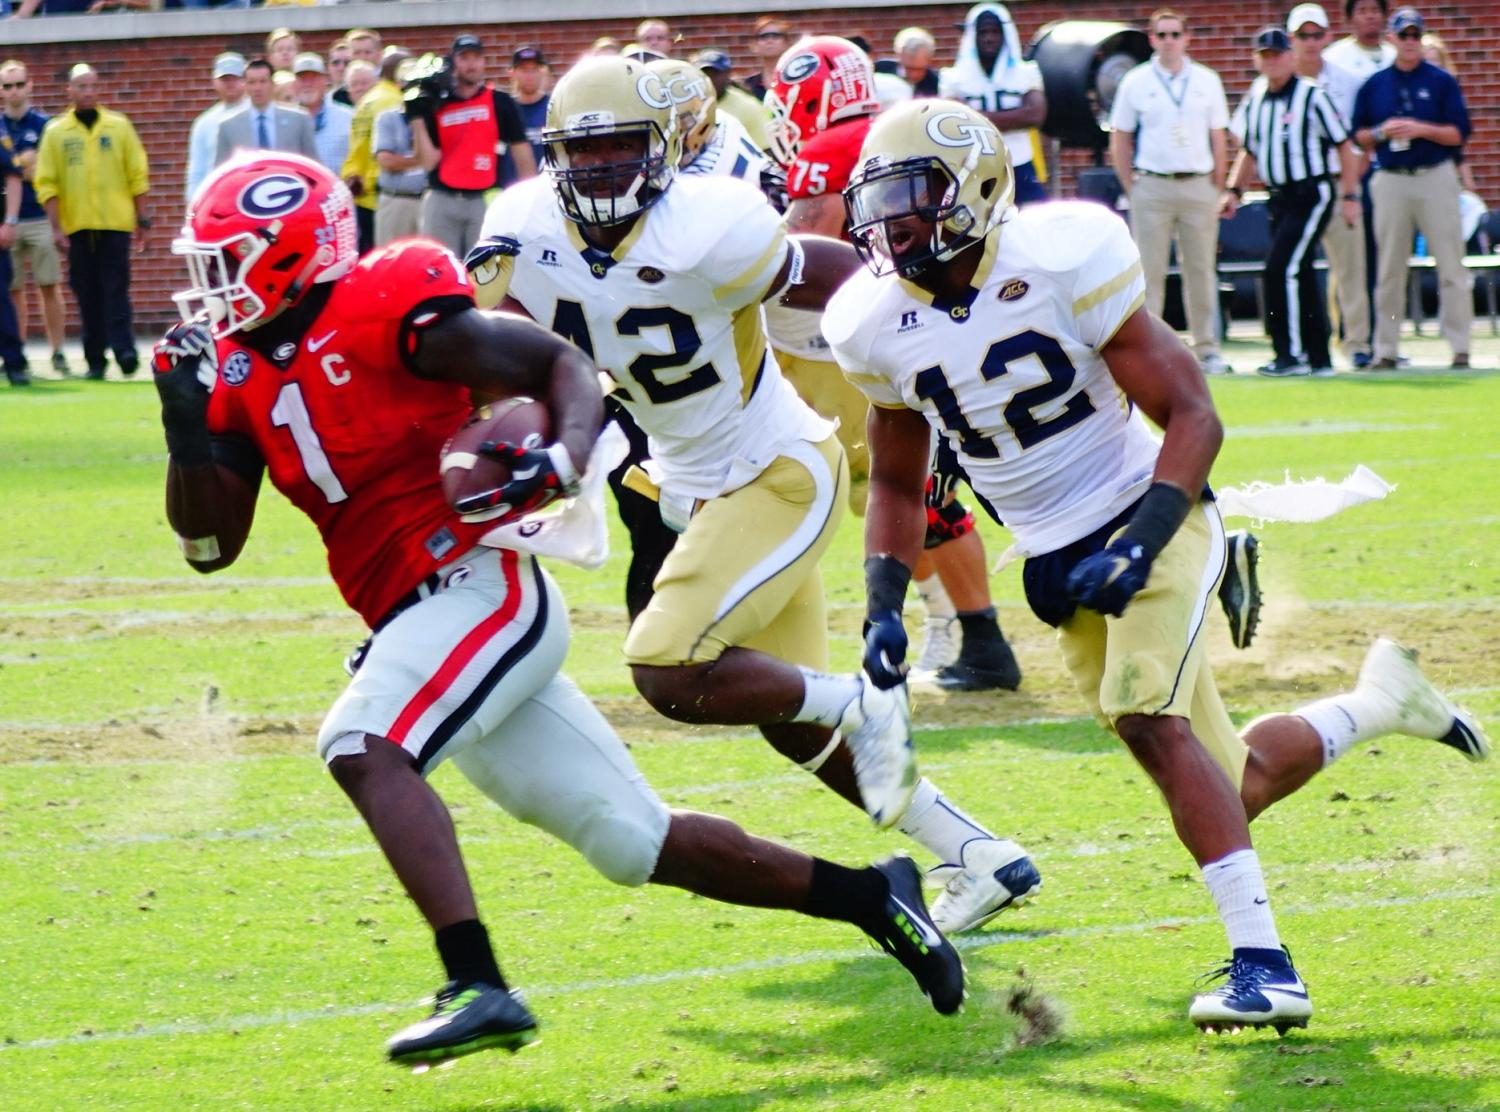 Sony Michel 4th quarter - UGA vs. GT 28-Nov-2015 (Photo by Bulldawg Illustrated's Greg Poole)